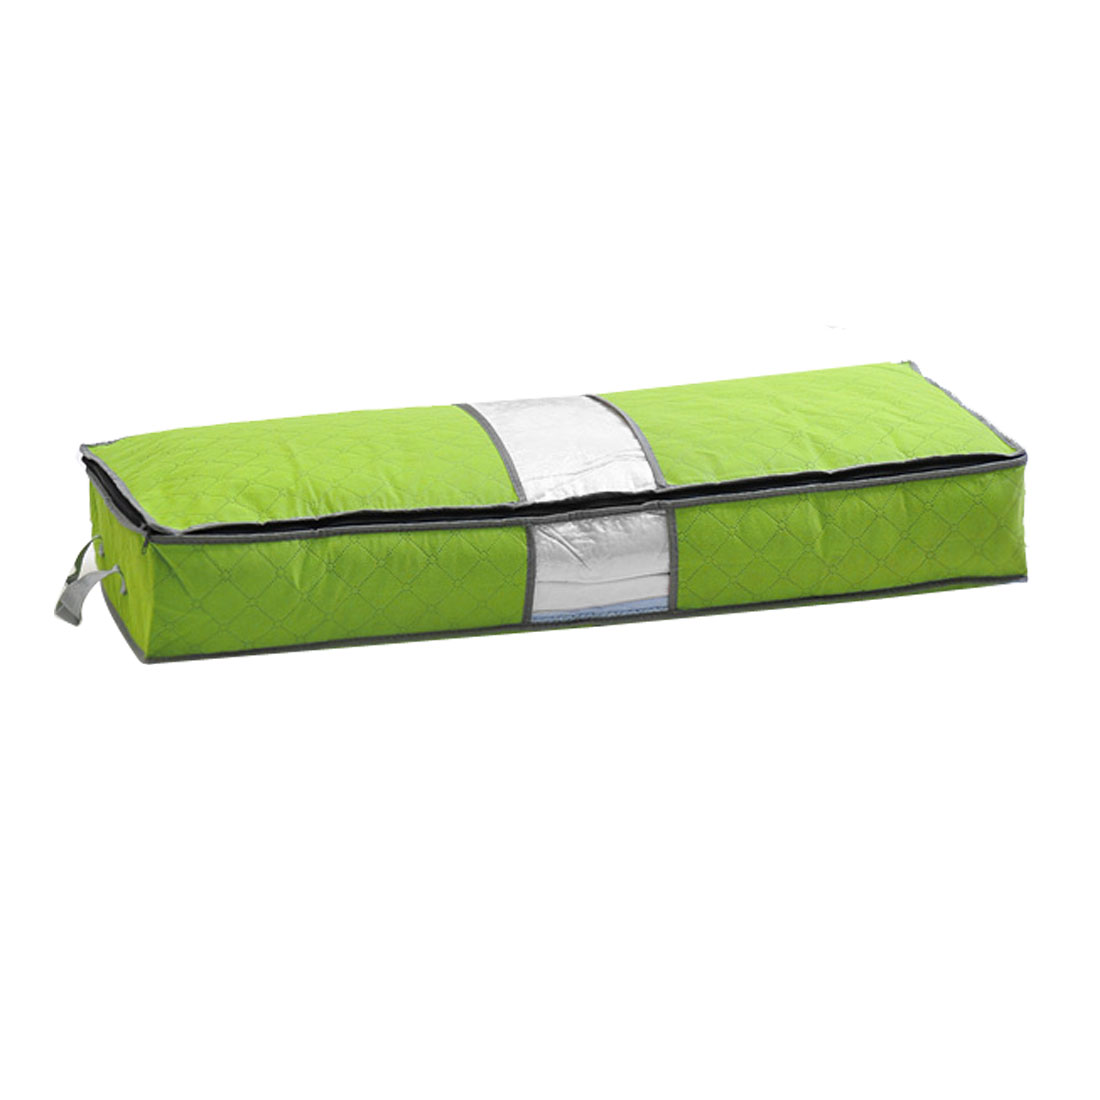 Bedroom Green Rectangle Design Zippered Clothes Quilt Storage Bag Pouch